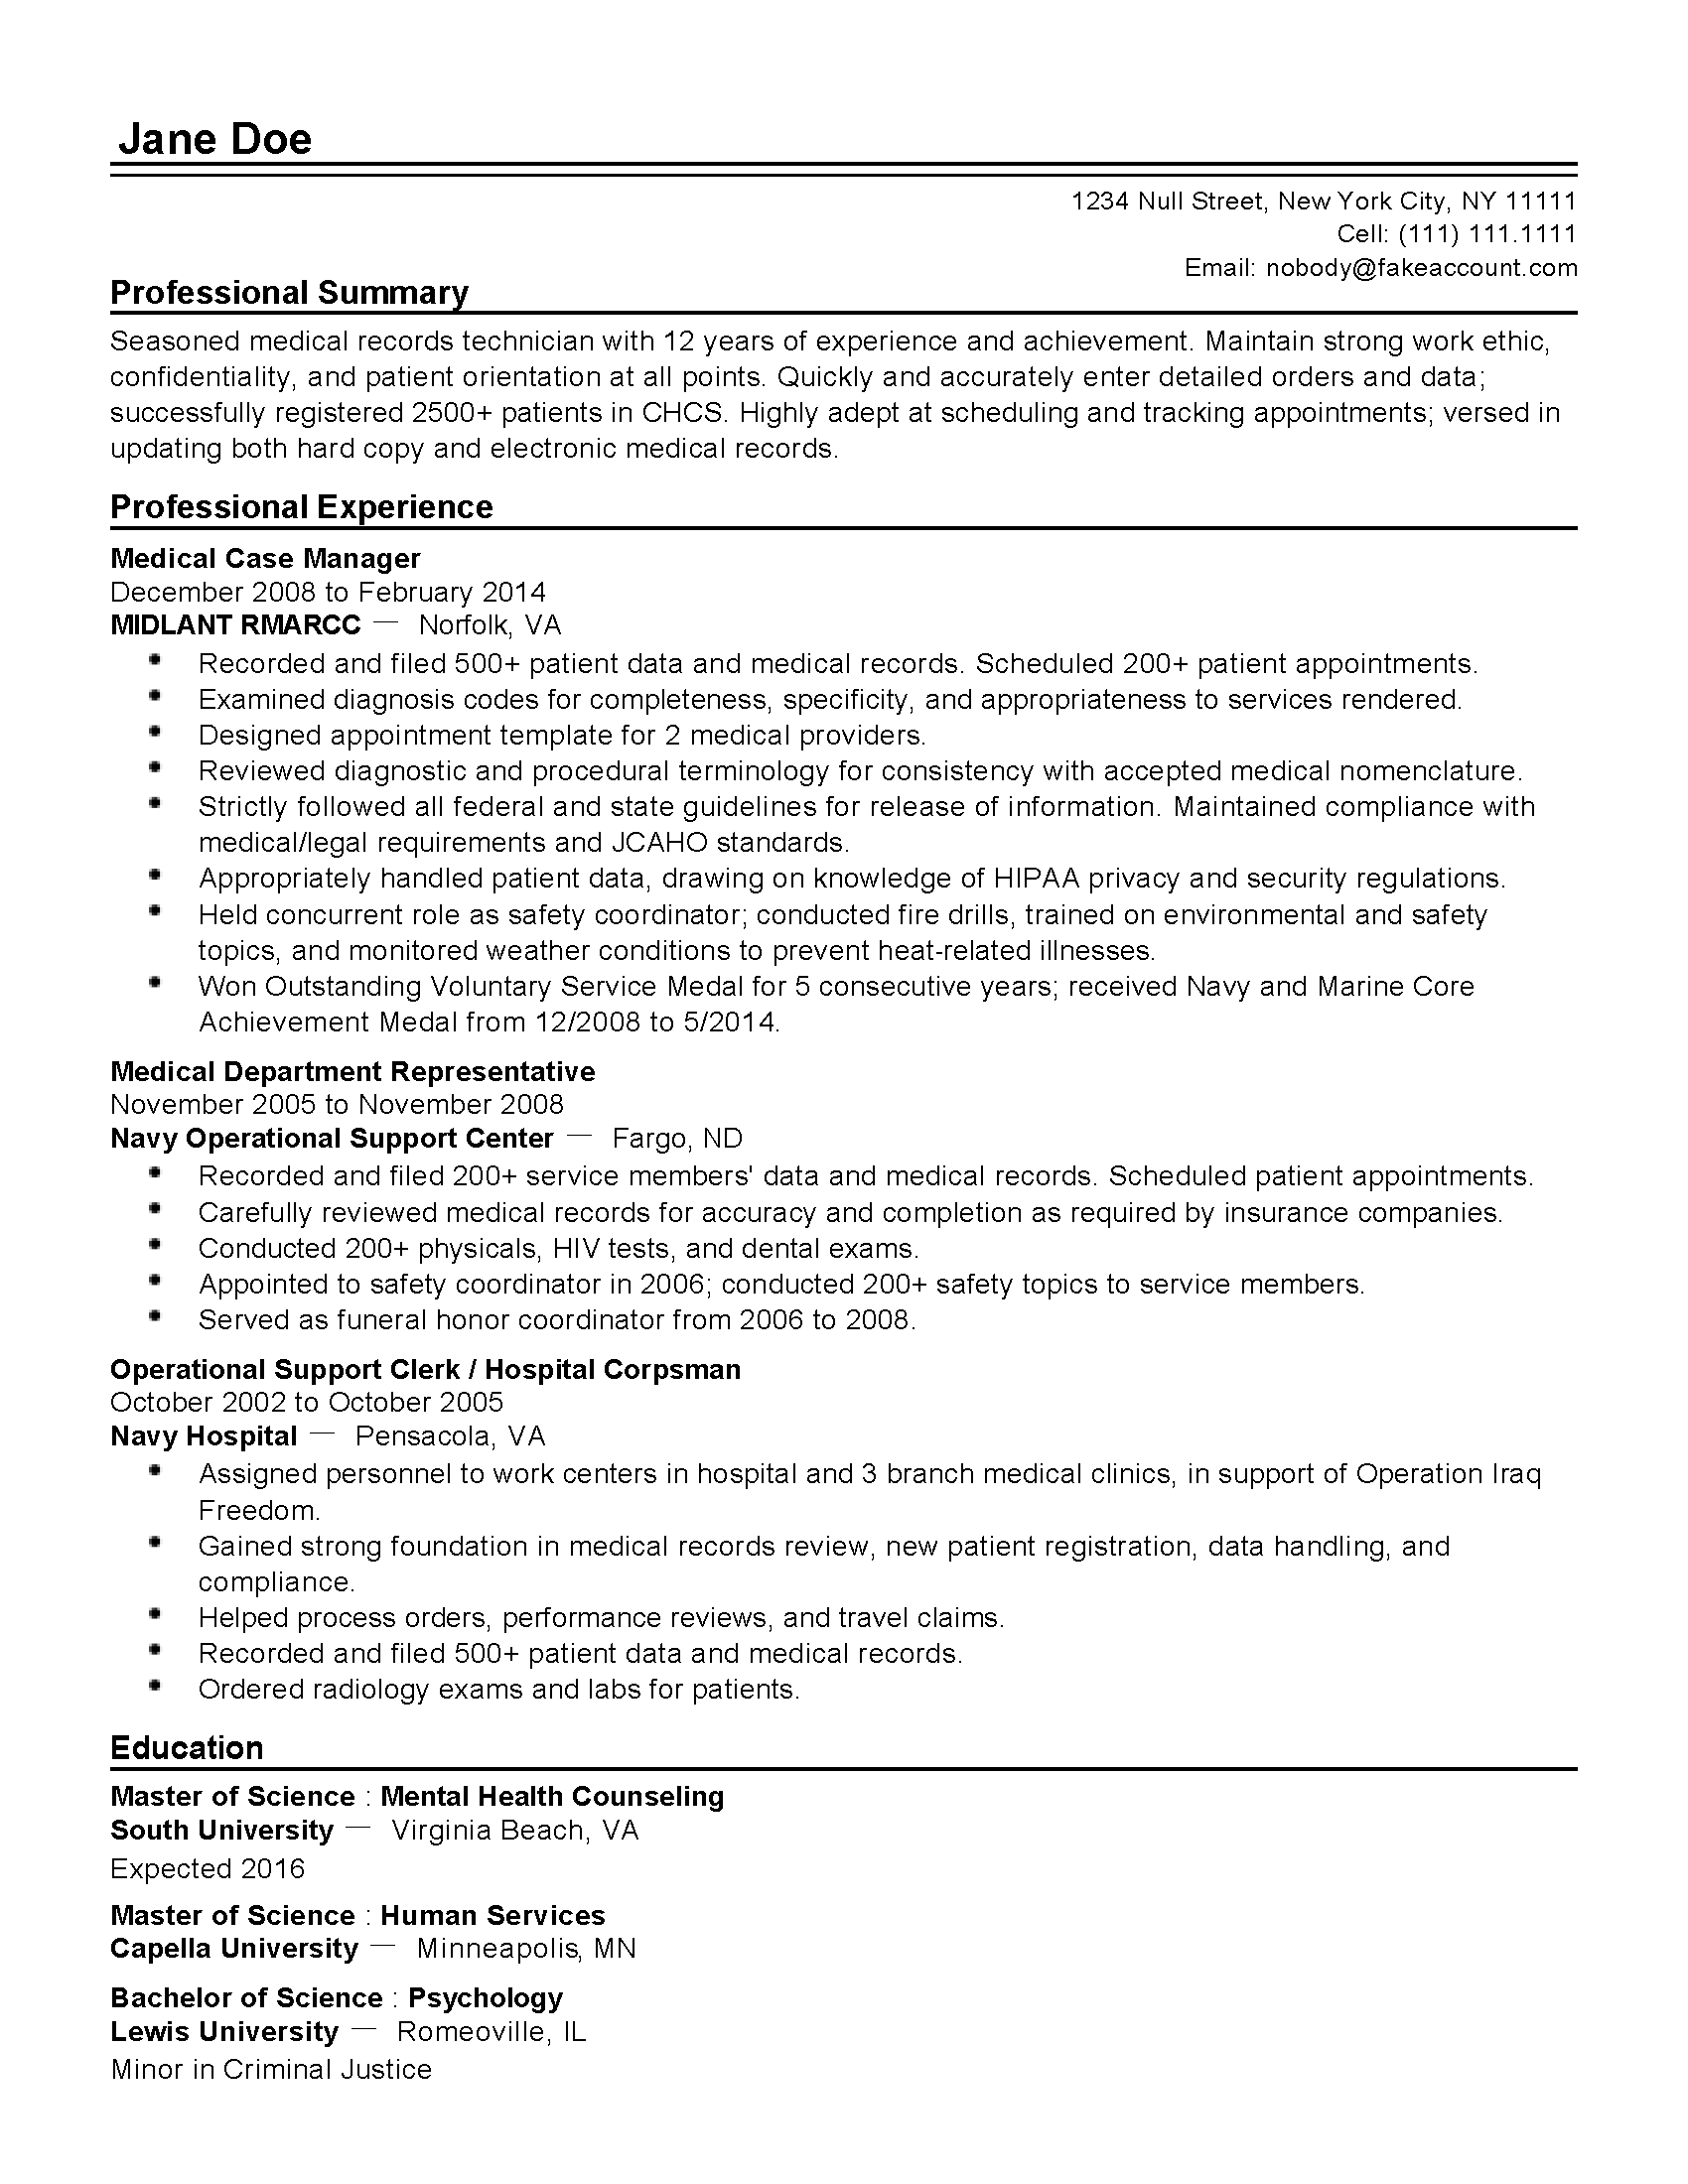 Virginia Tech Resume Tips Post Interview Email Thank You Pilot